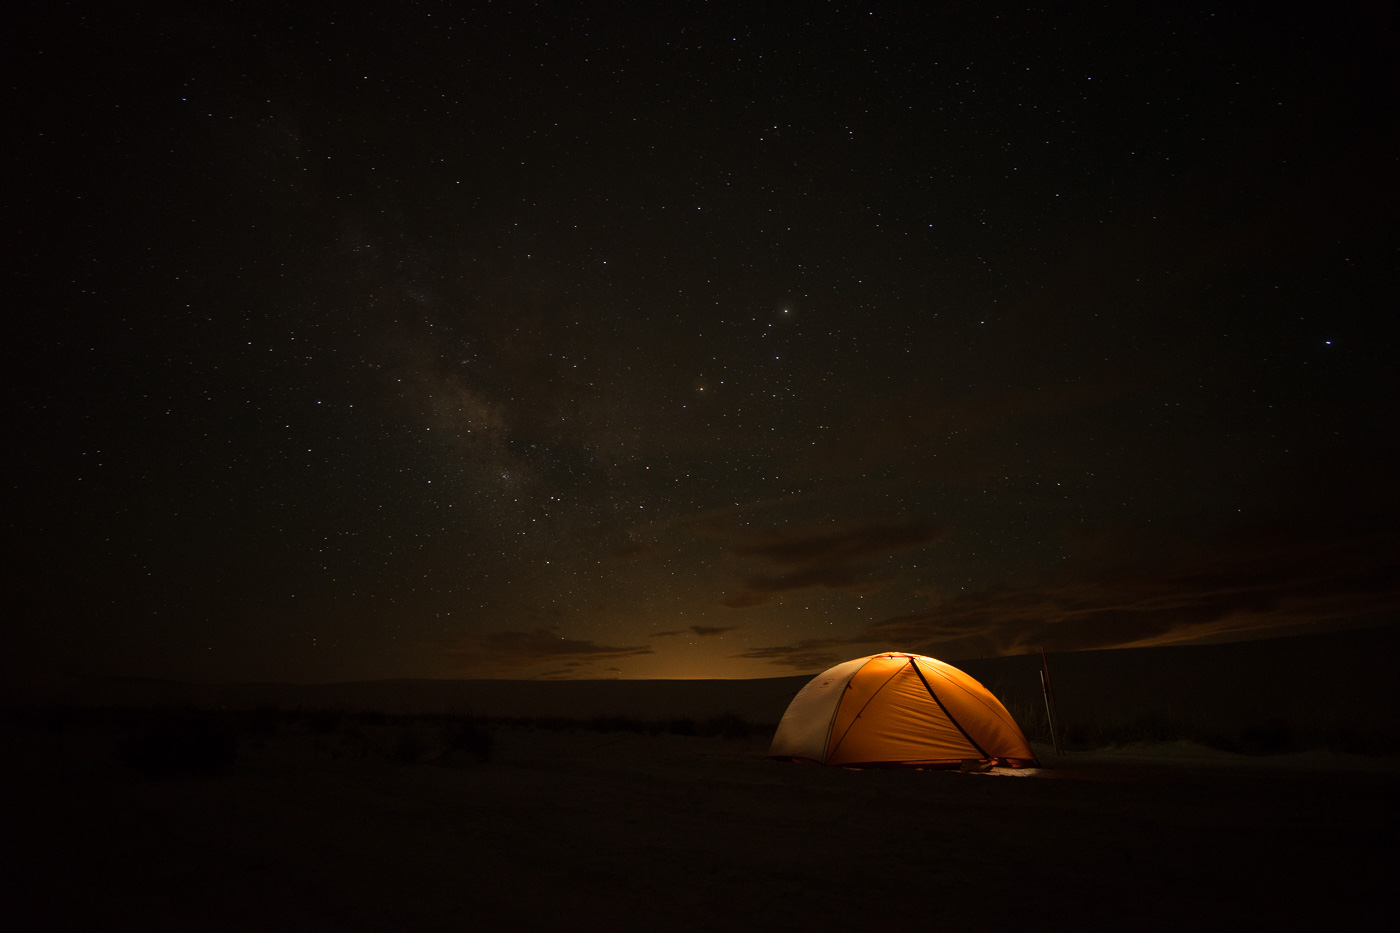 How to Process Milky Way Astrophotography in Adobe Lightroom